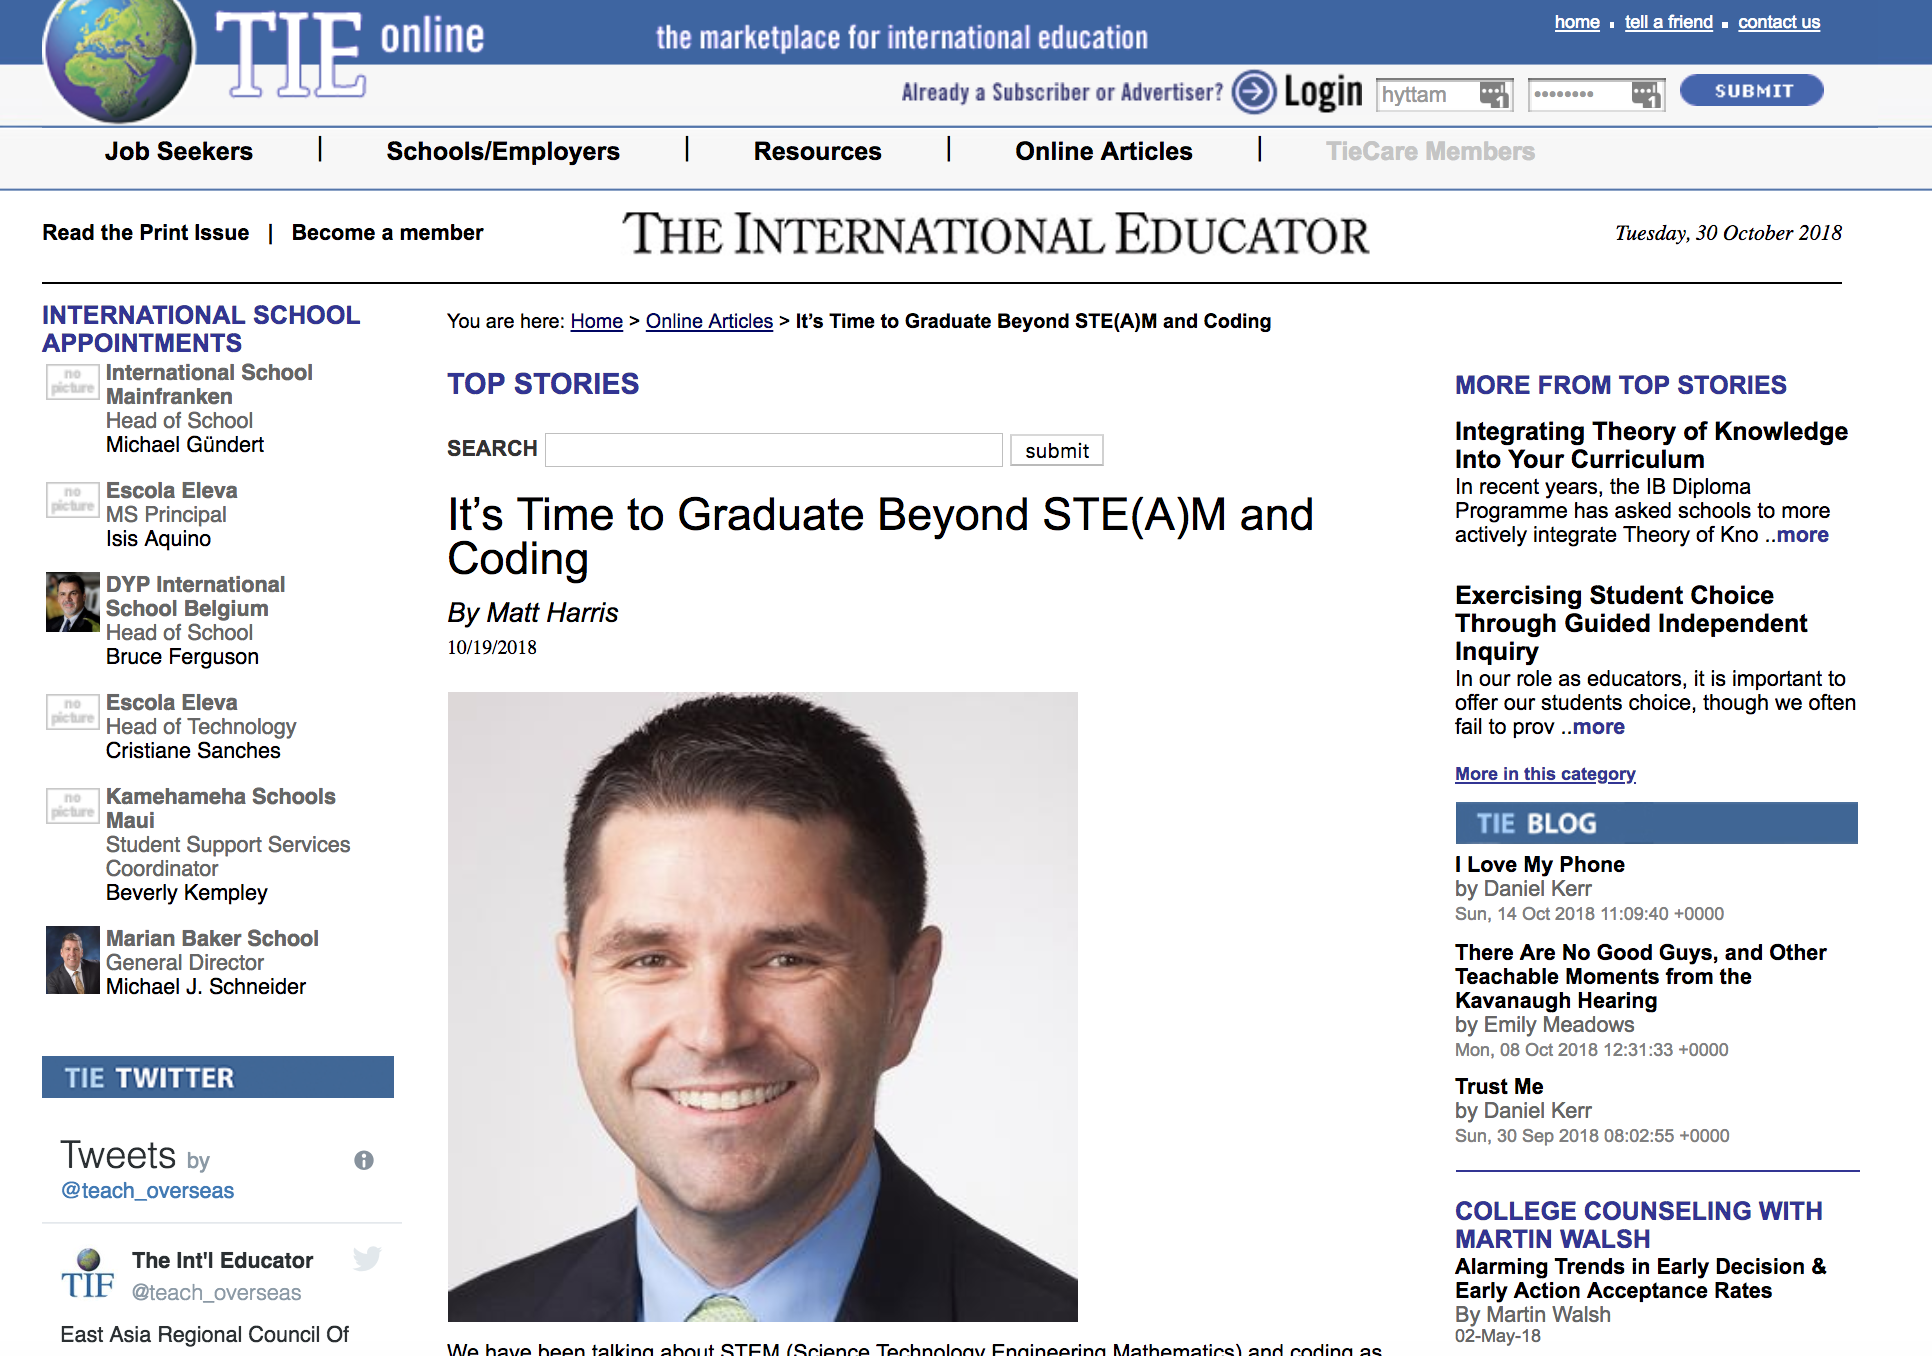 It's Time to Graduate Beyond STE(A)M and Coding - TIEOnline